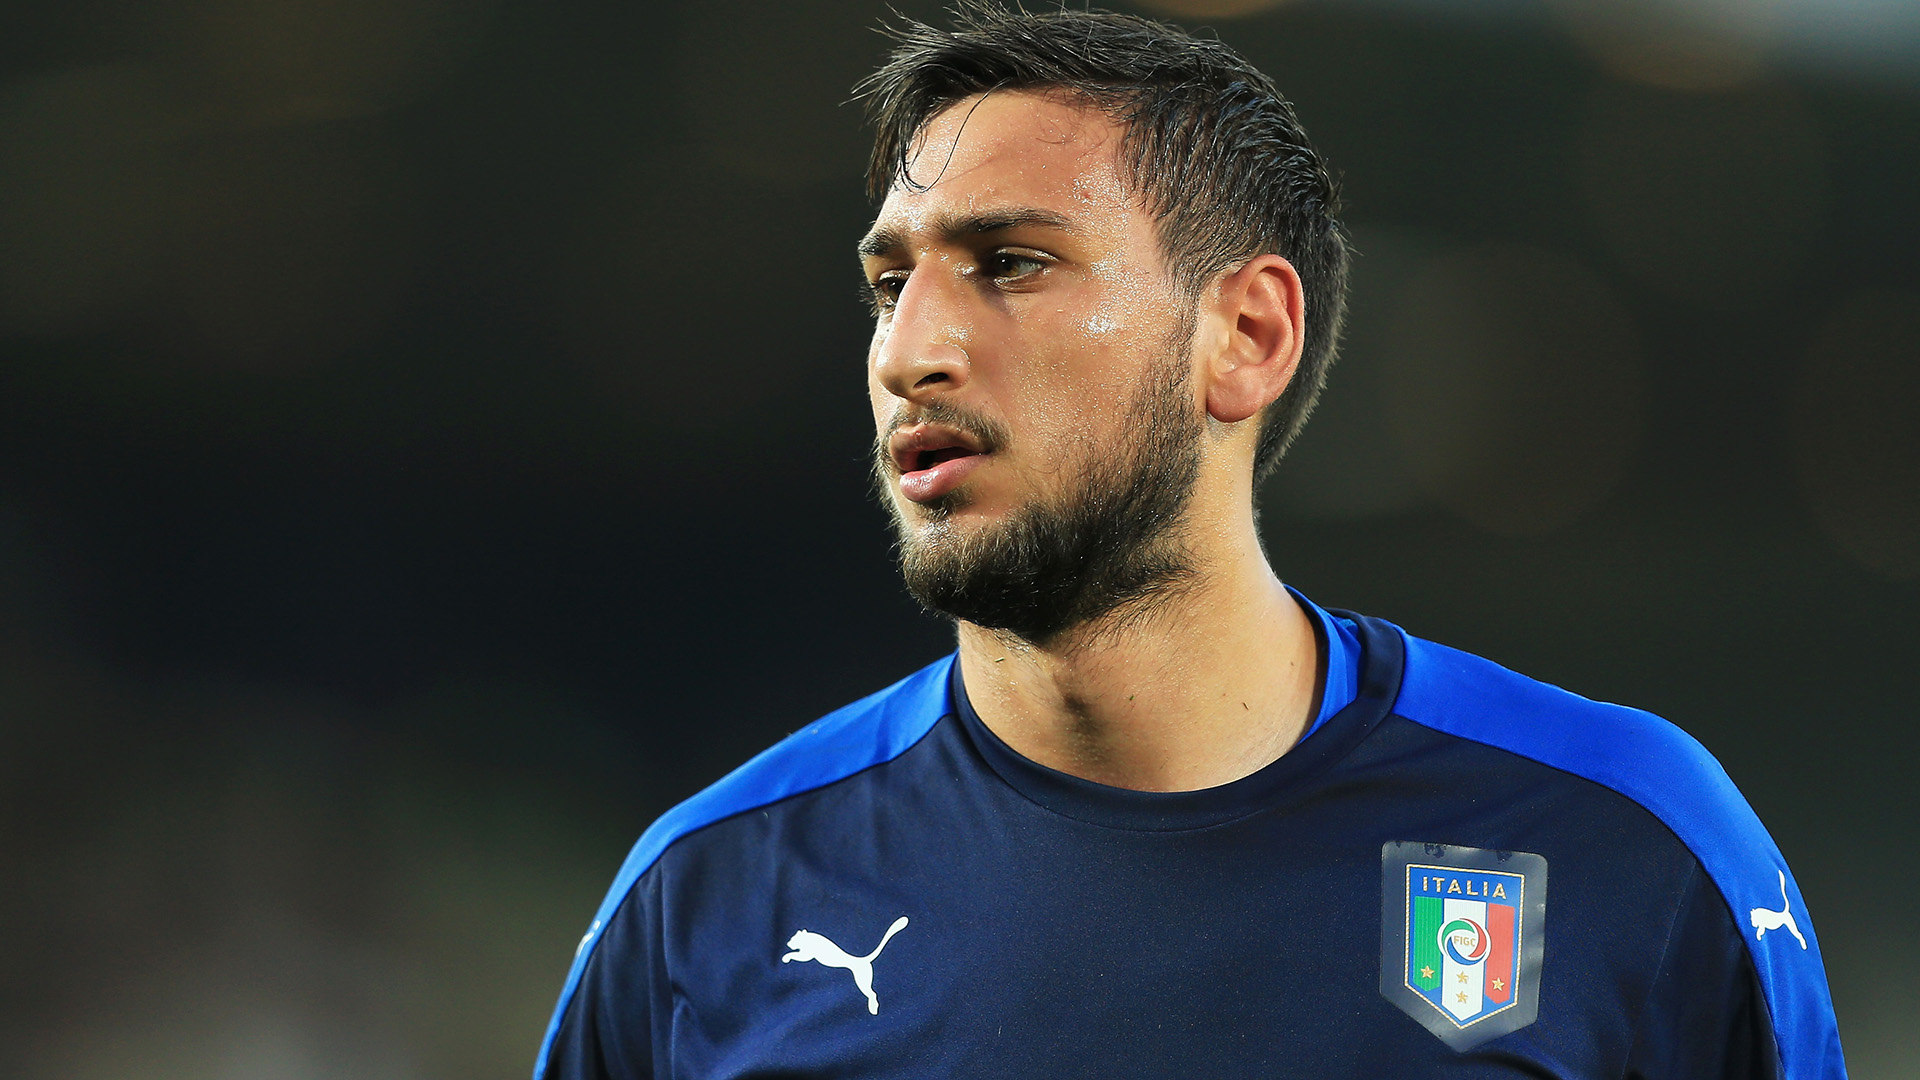 Donnarumma Finally Speaks On Milan Social Media 'Uproar'